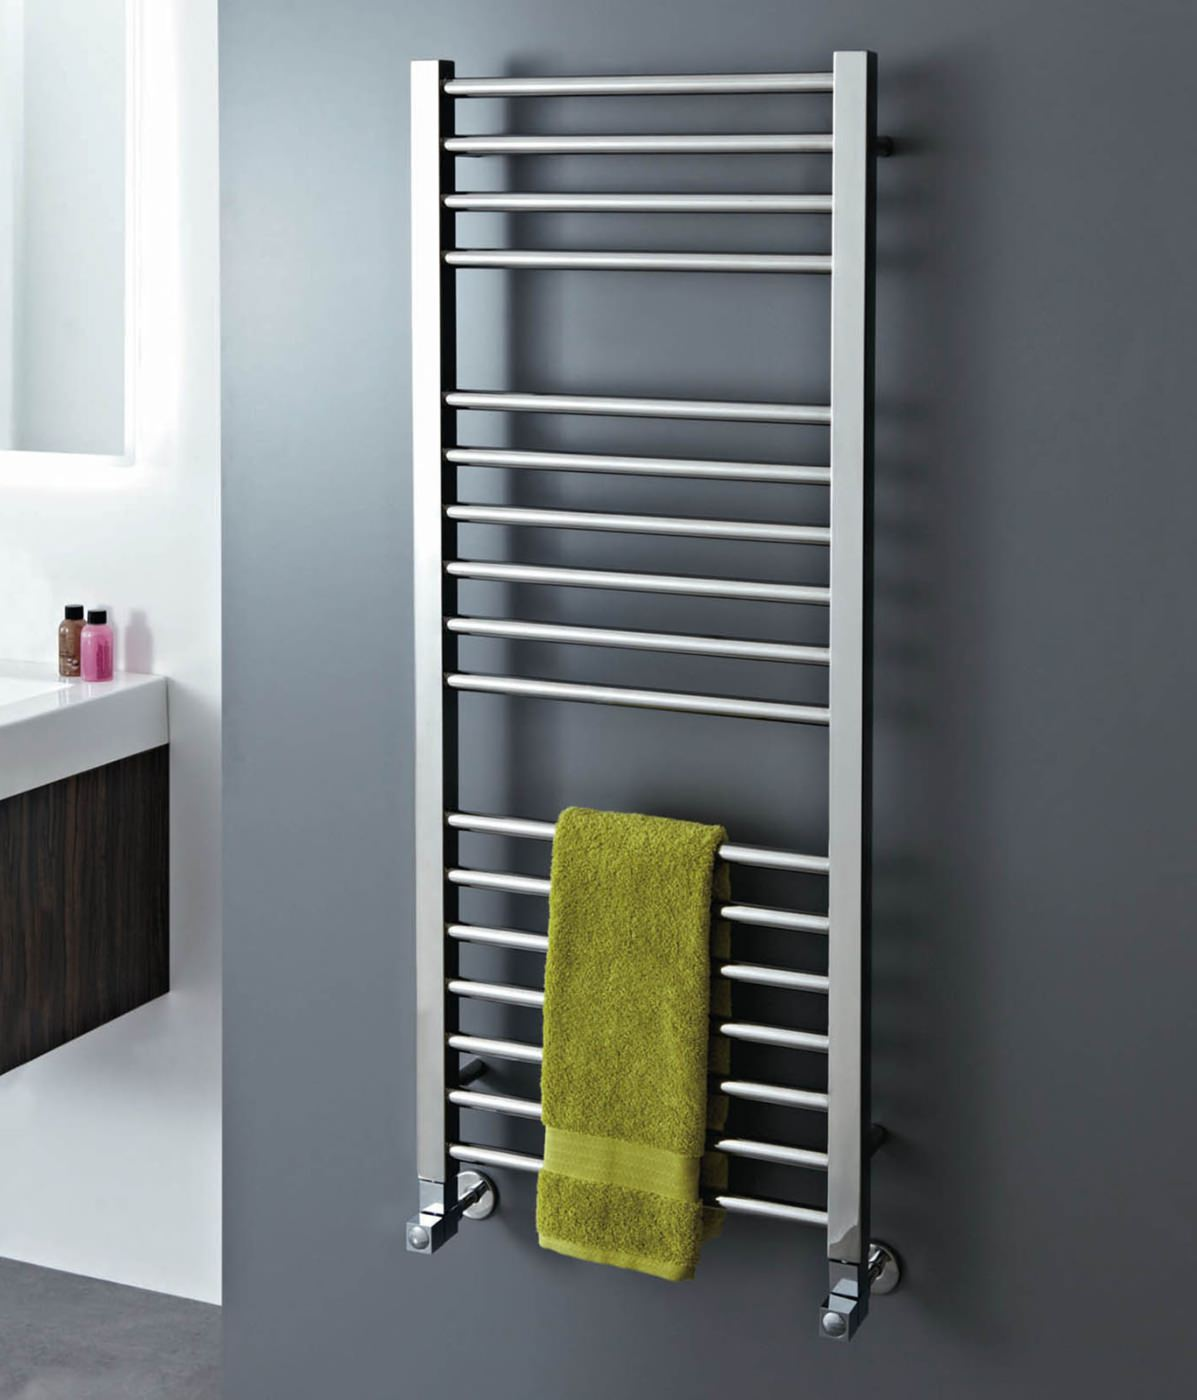 Stainless Steel Electric Radiator Towel Rail: Phoenix Roscoe 500 X 800mm Polished Stainless Steel